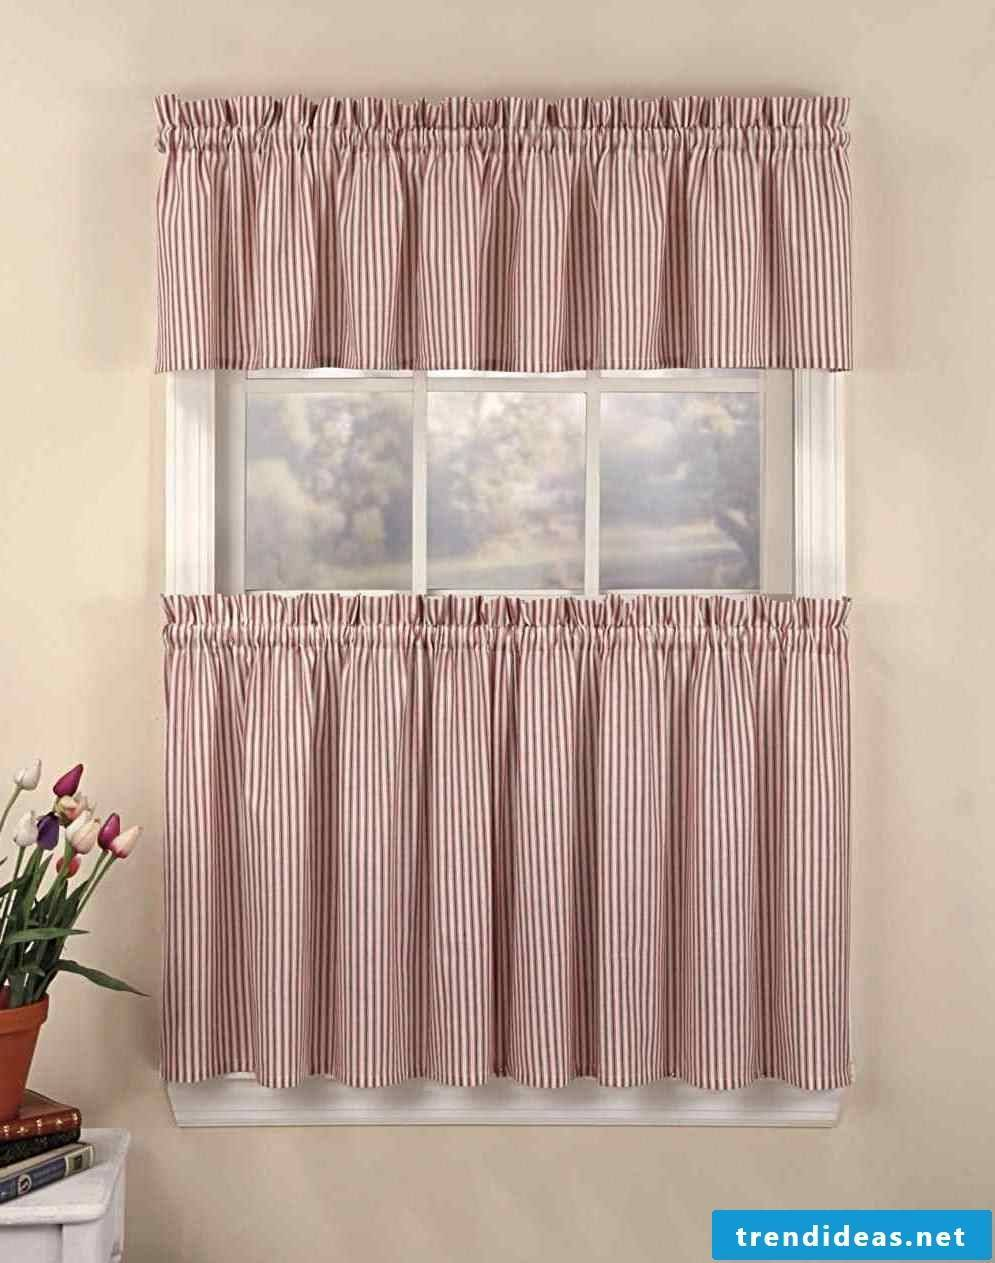 Sewing curtains can be easy